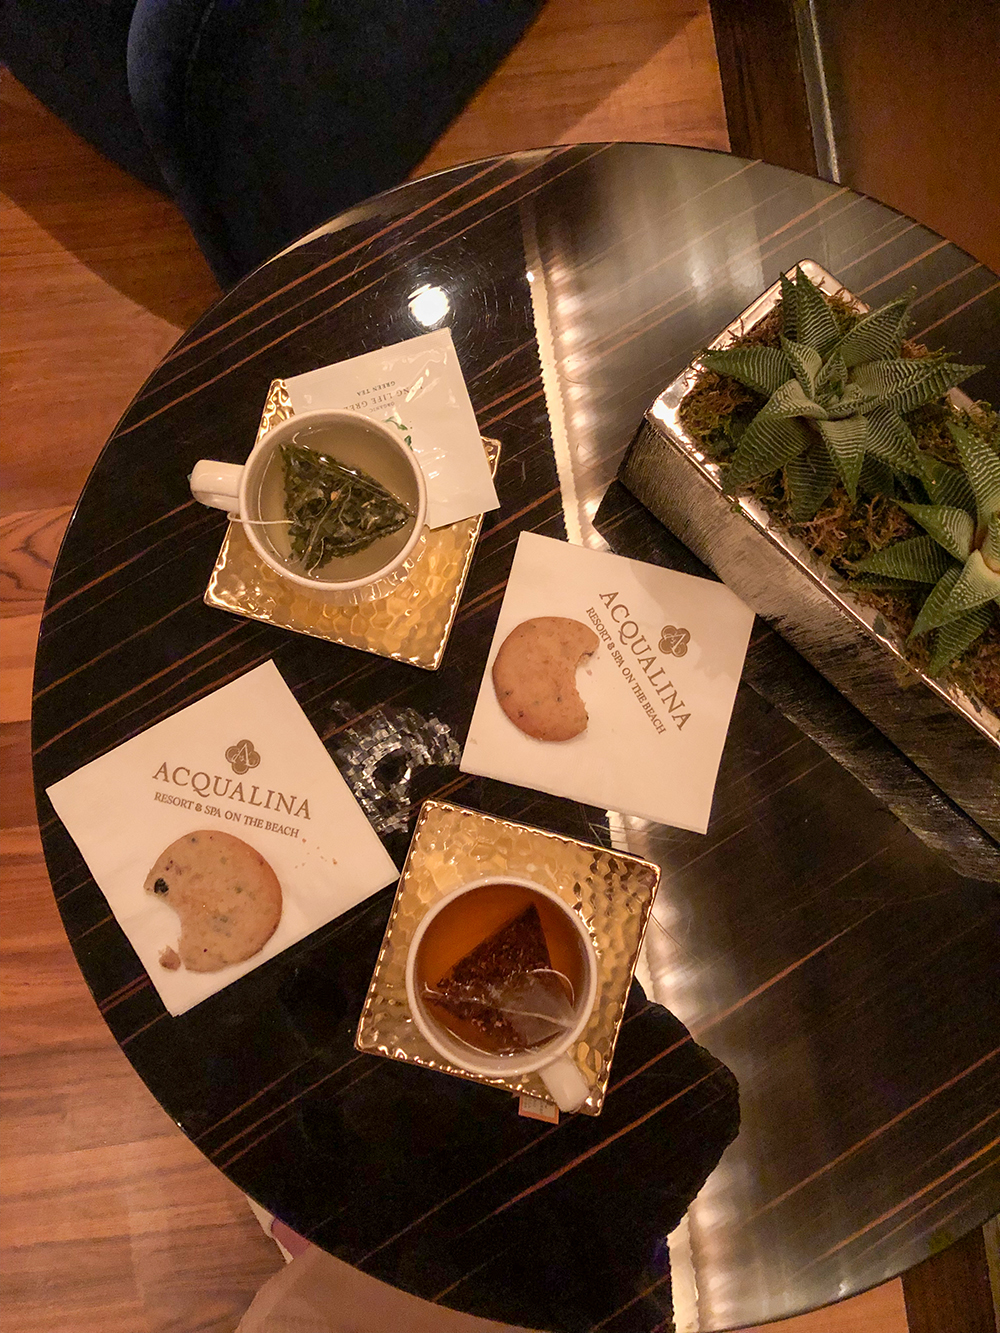 We enjoyed post-massages tea and herb-infused cookies.